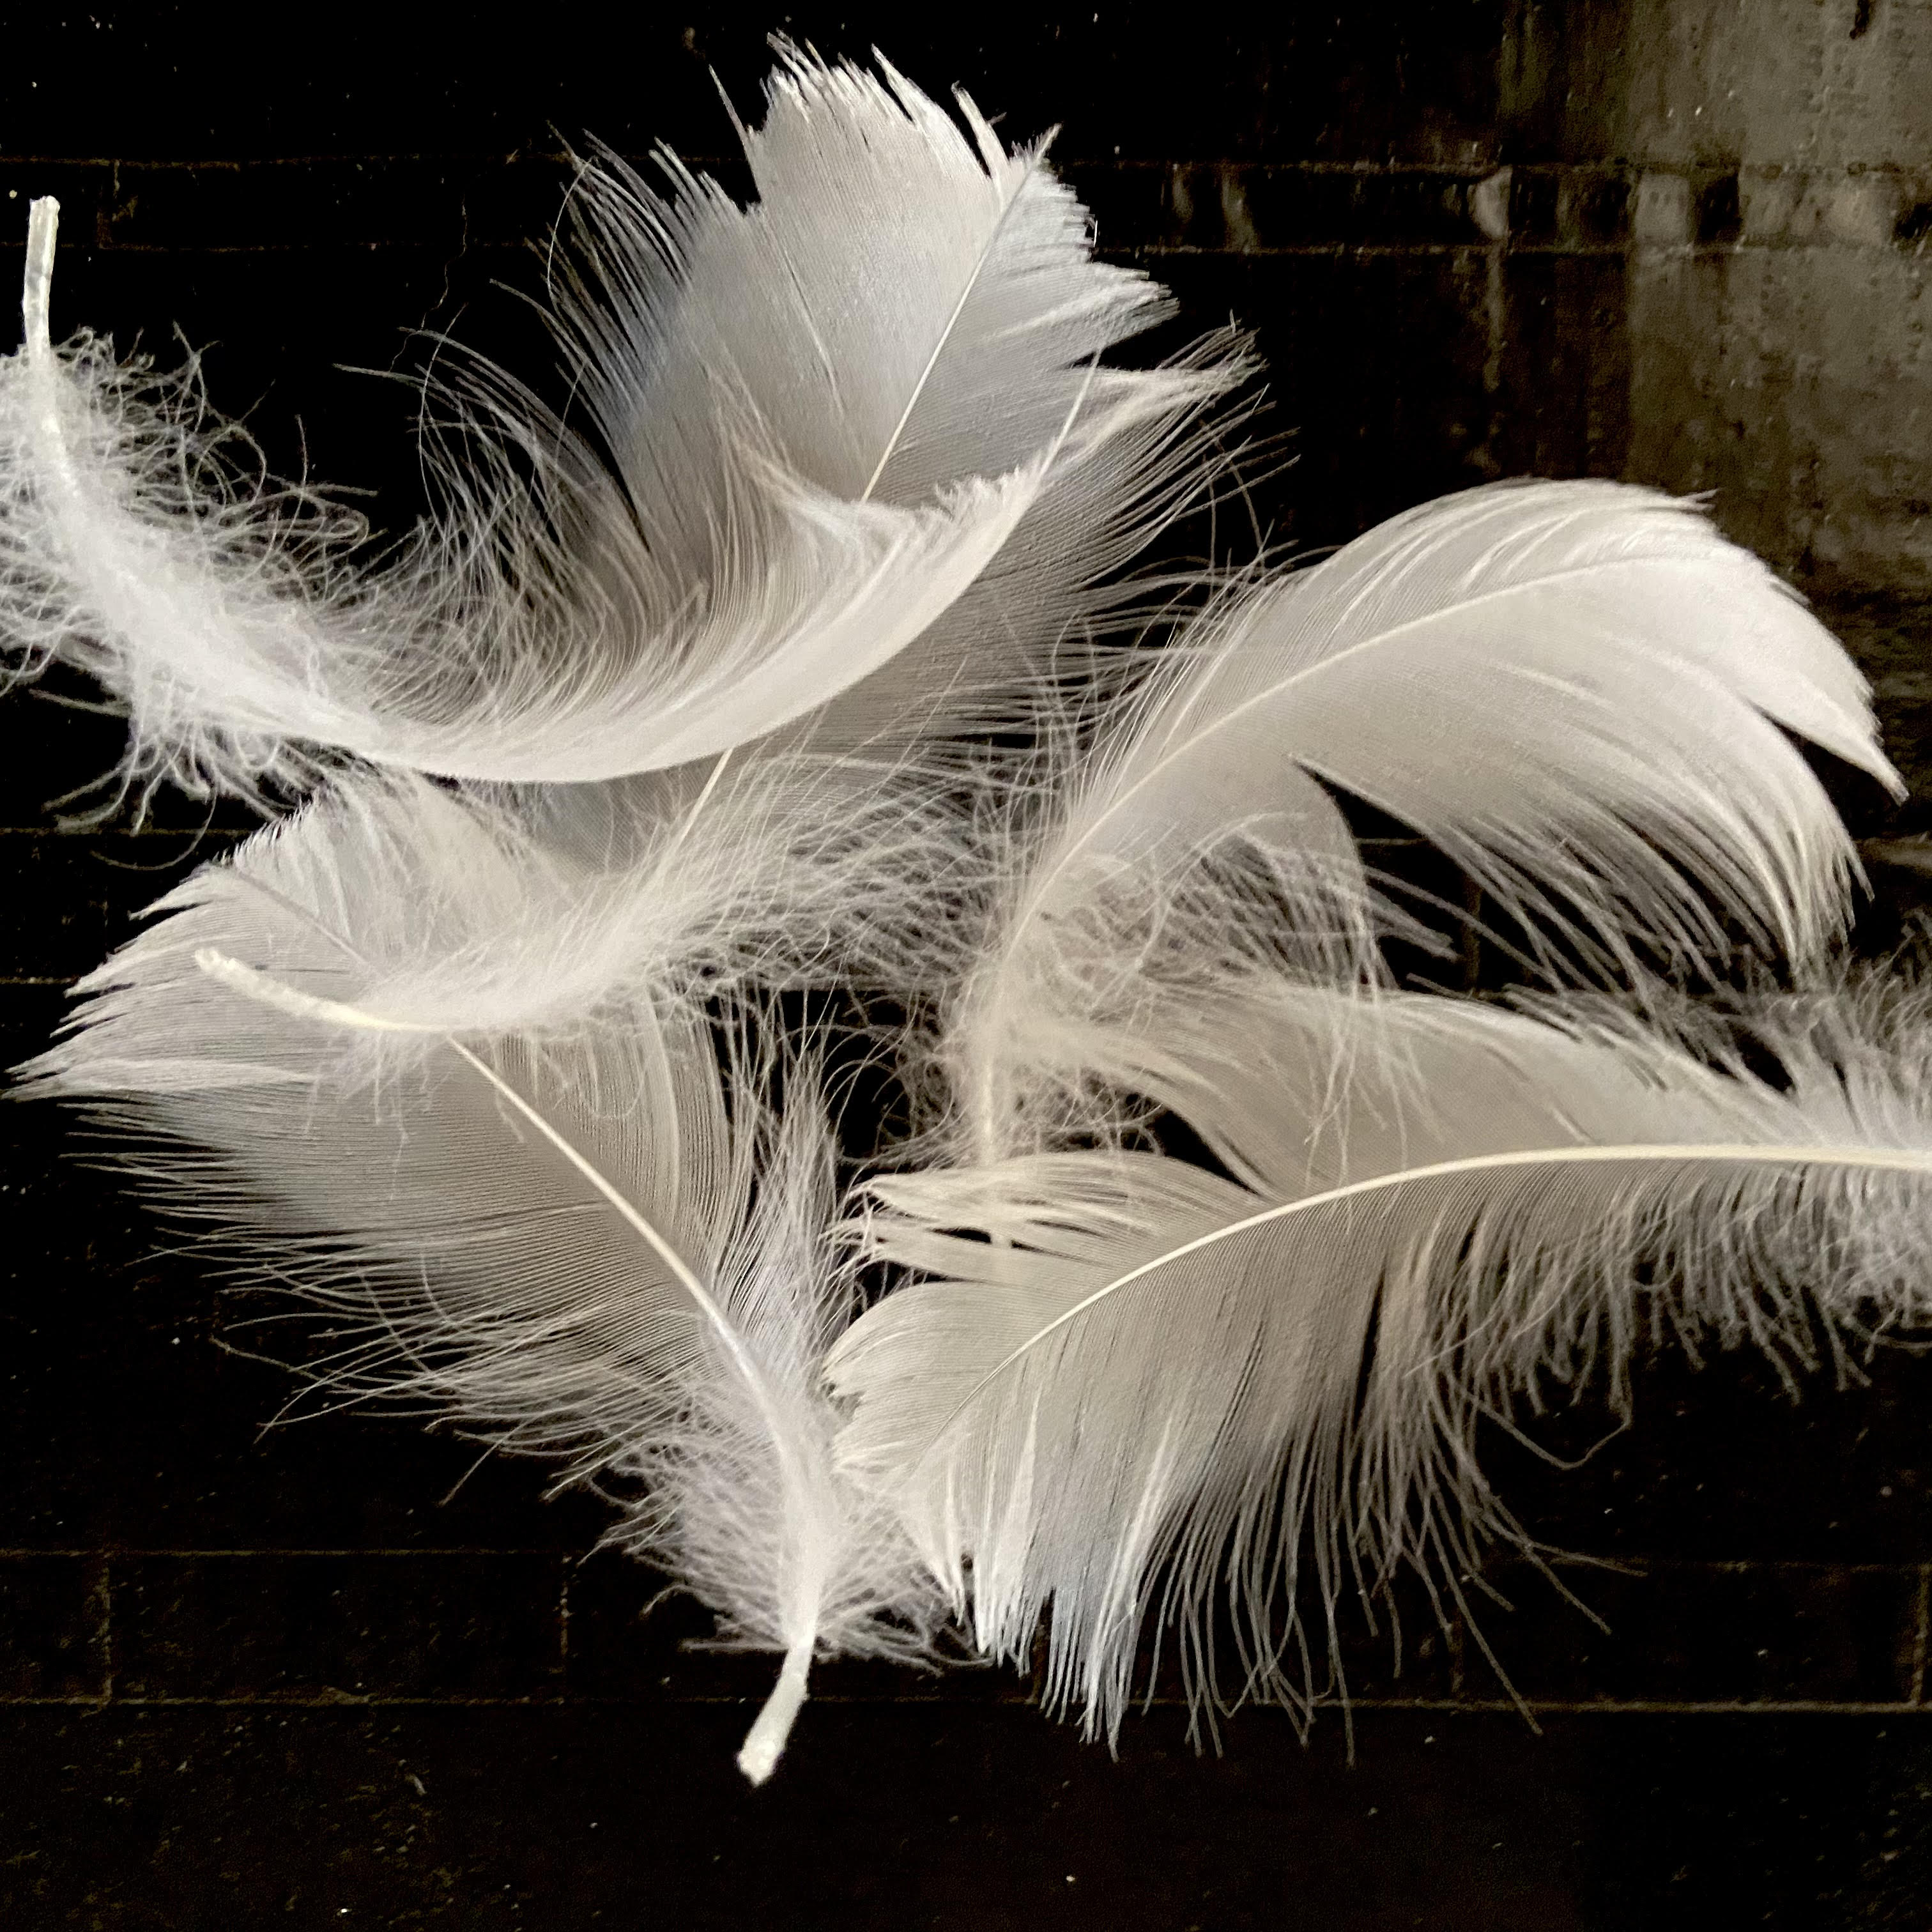 Swan Feathers Too by Jean Wilson for Birds of Firle